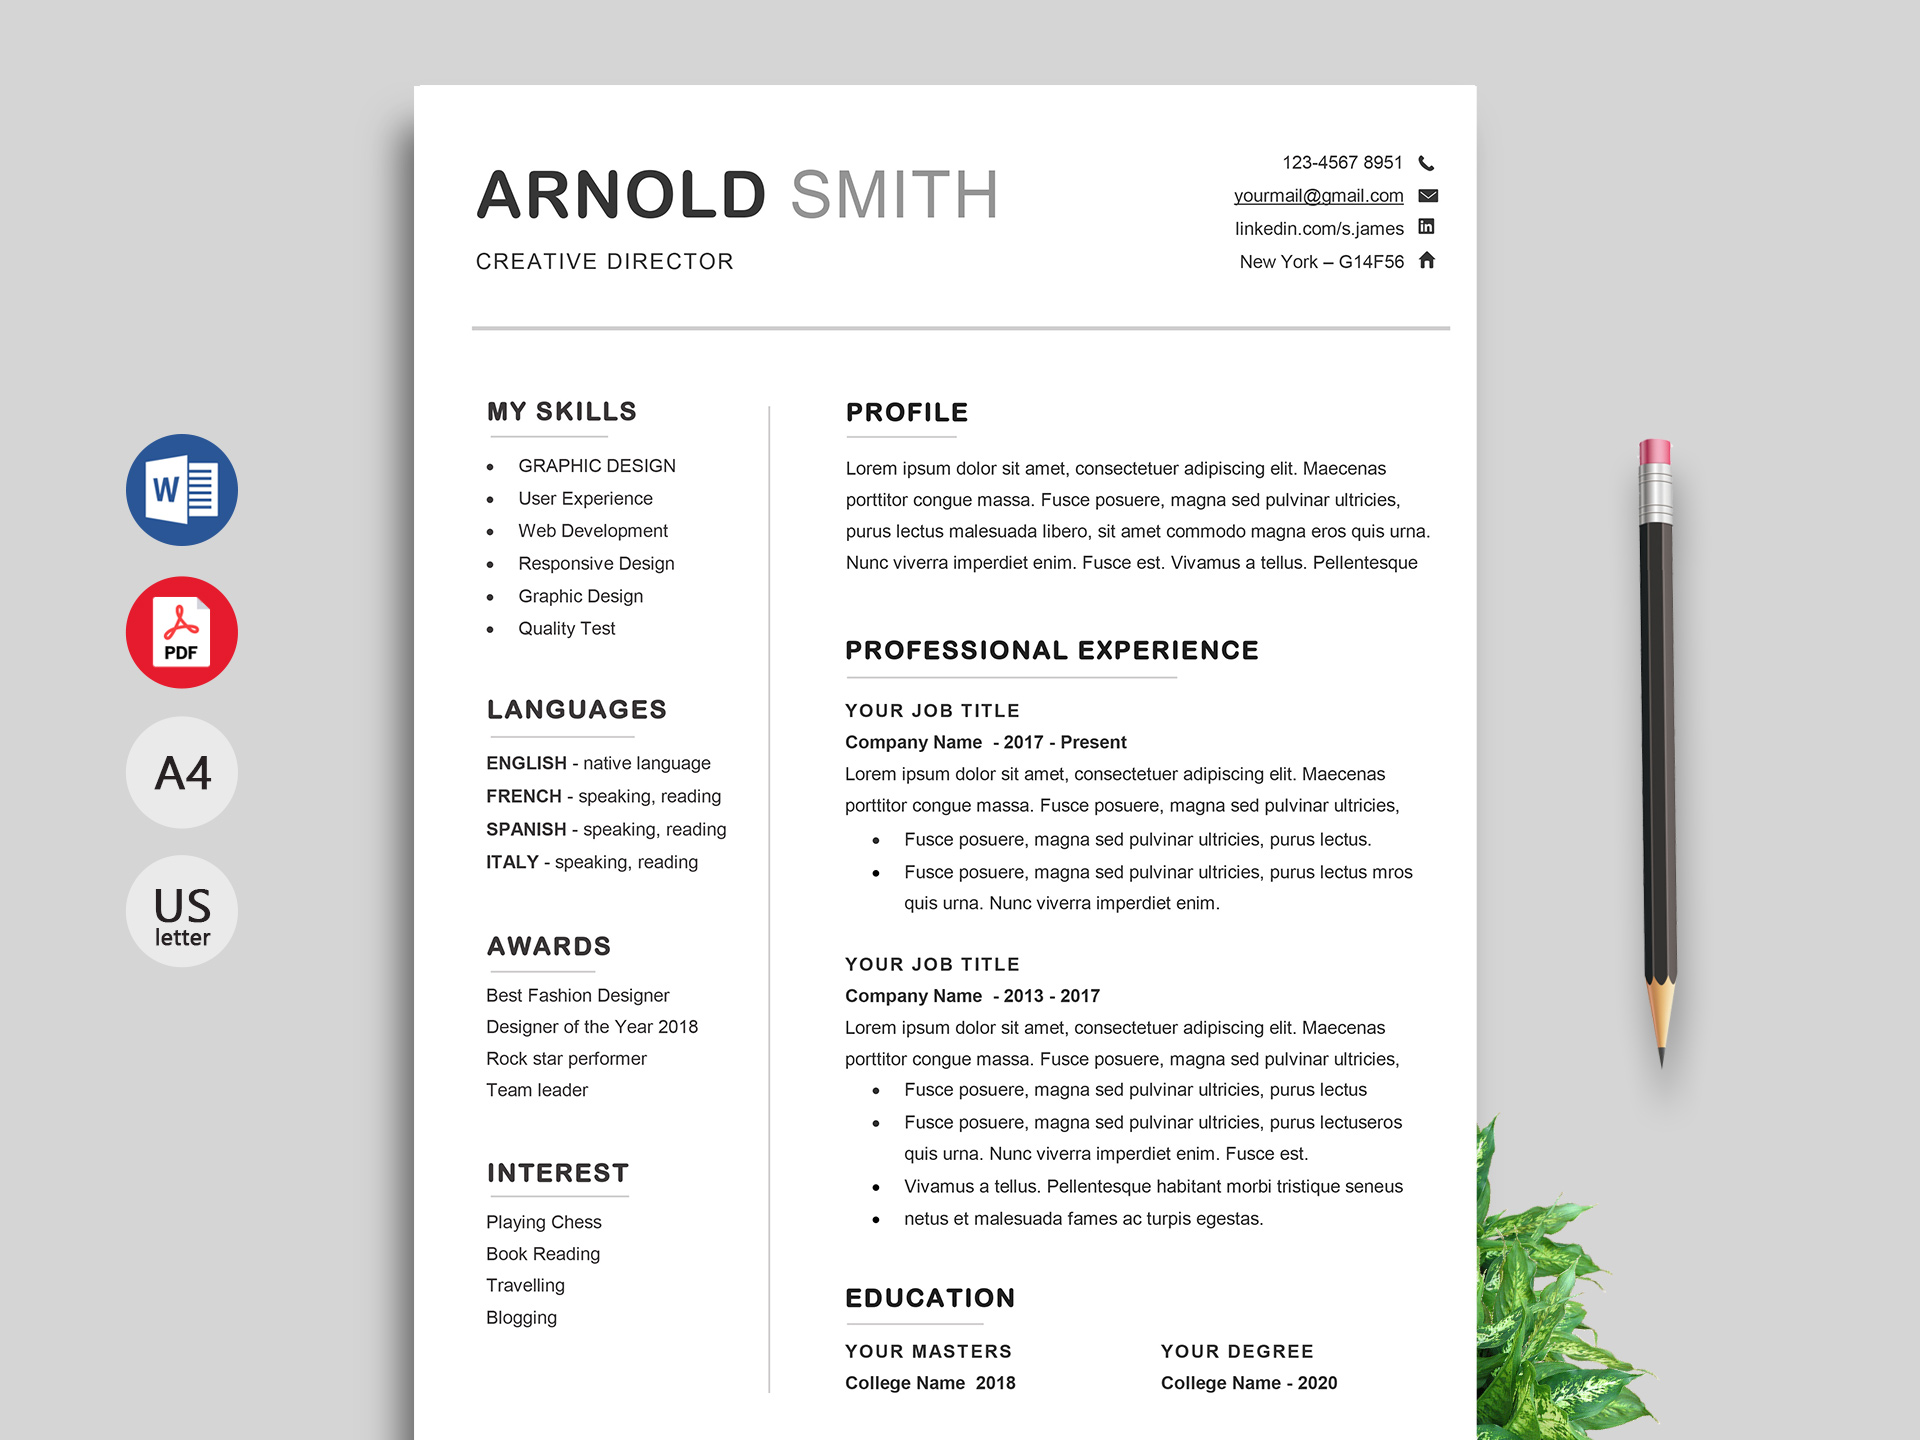 Free Resume & CV Templates in Word Format 2019 | ResumeKraft